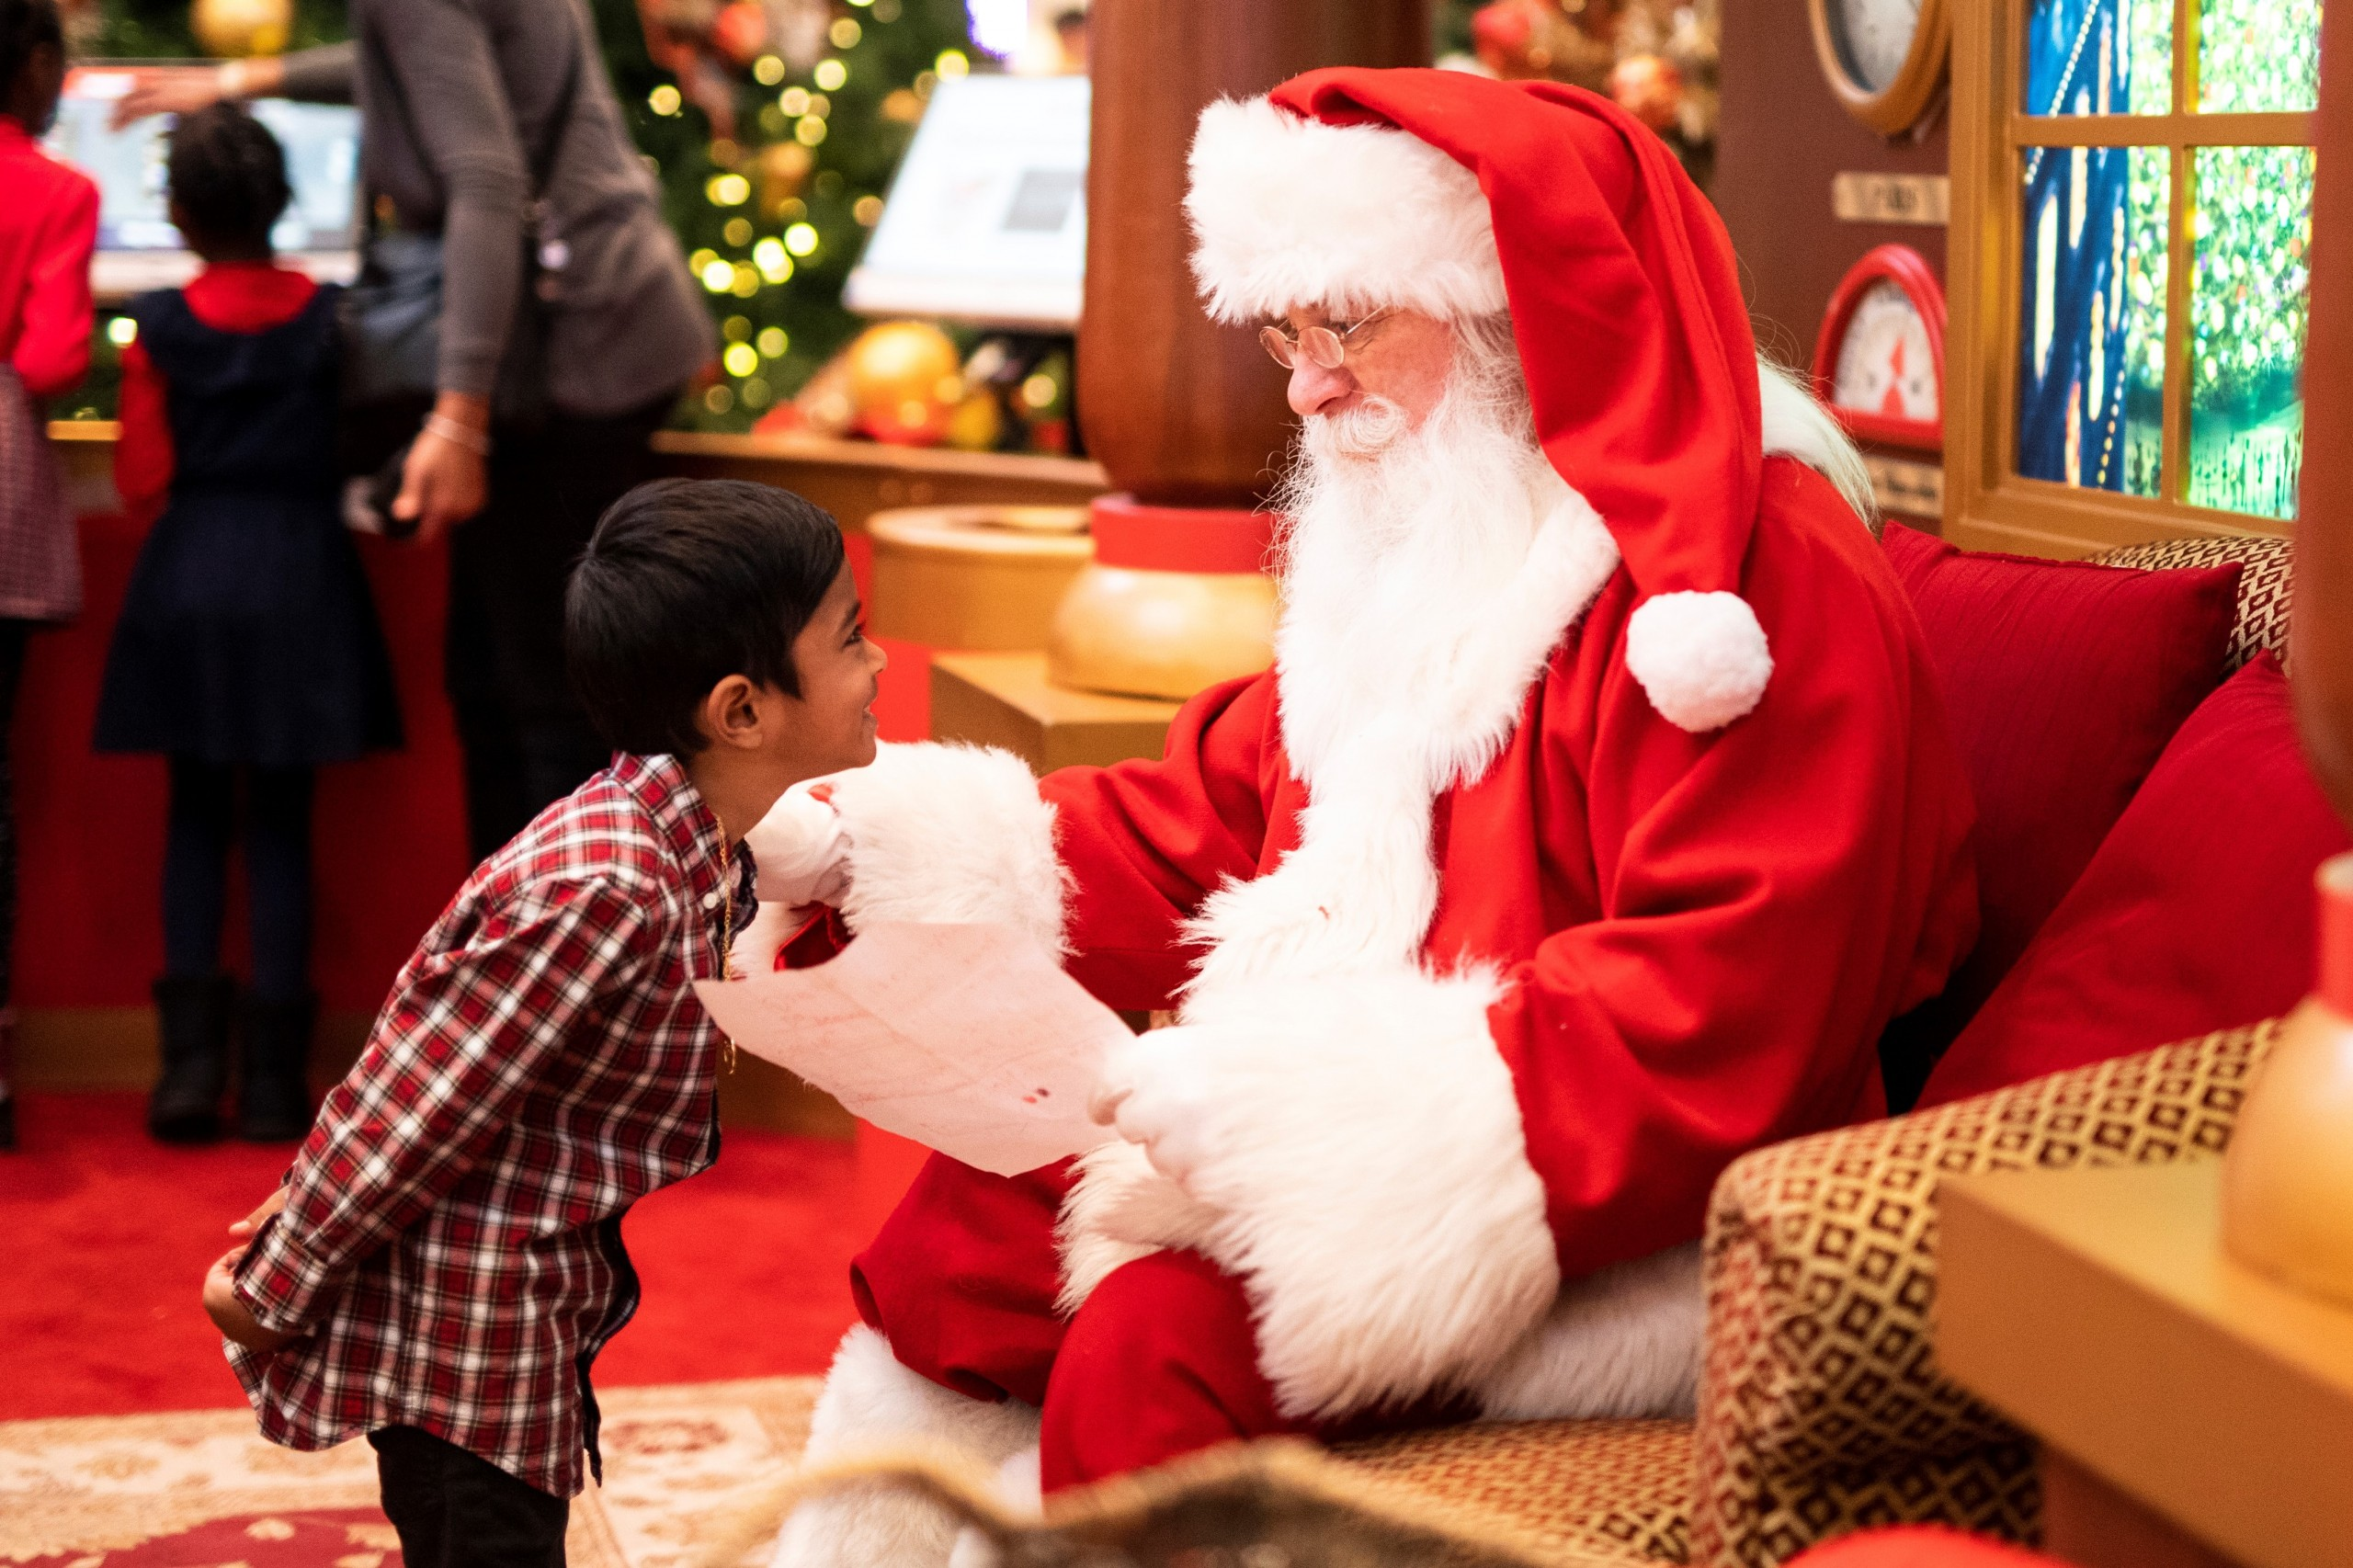 Child visits with Santa Claus.